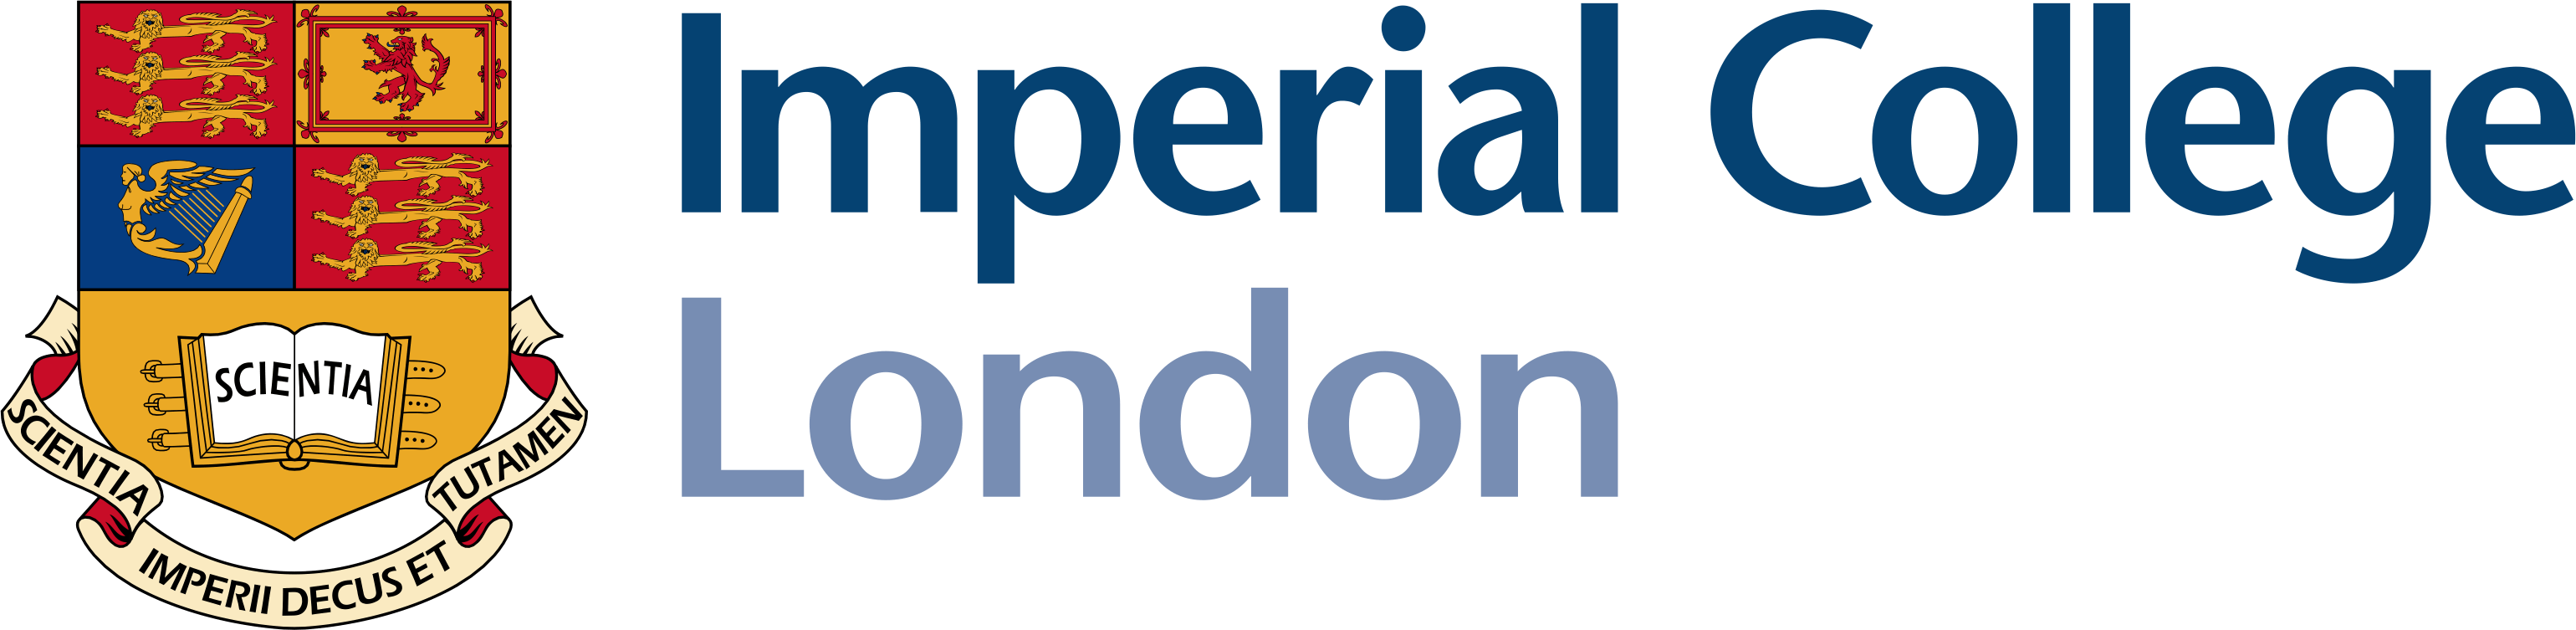 Imperial-College-London2